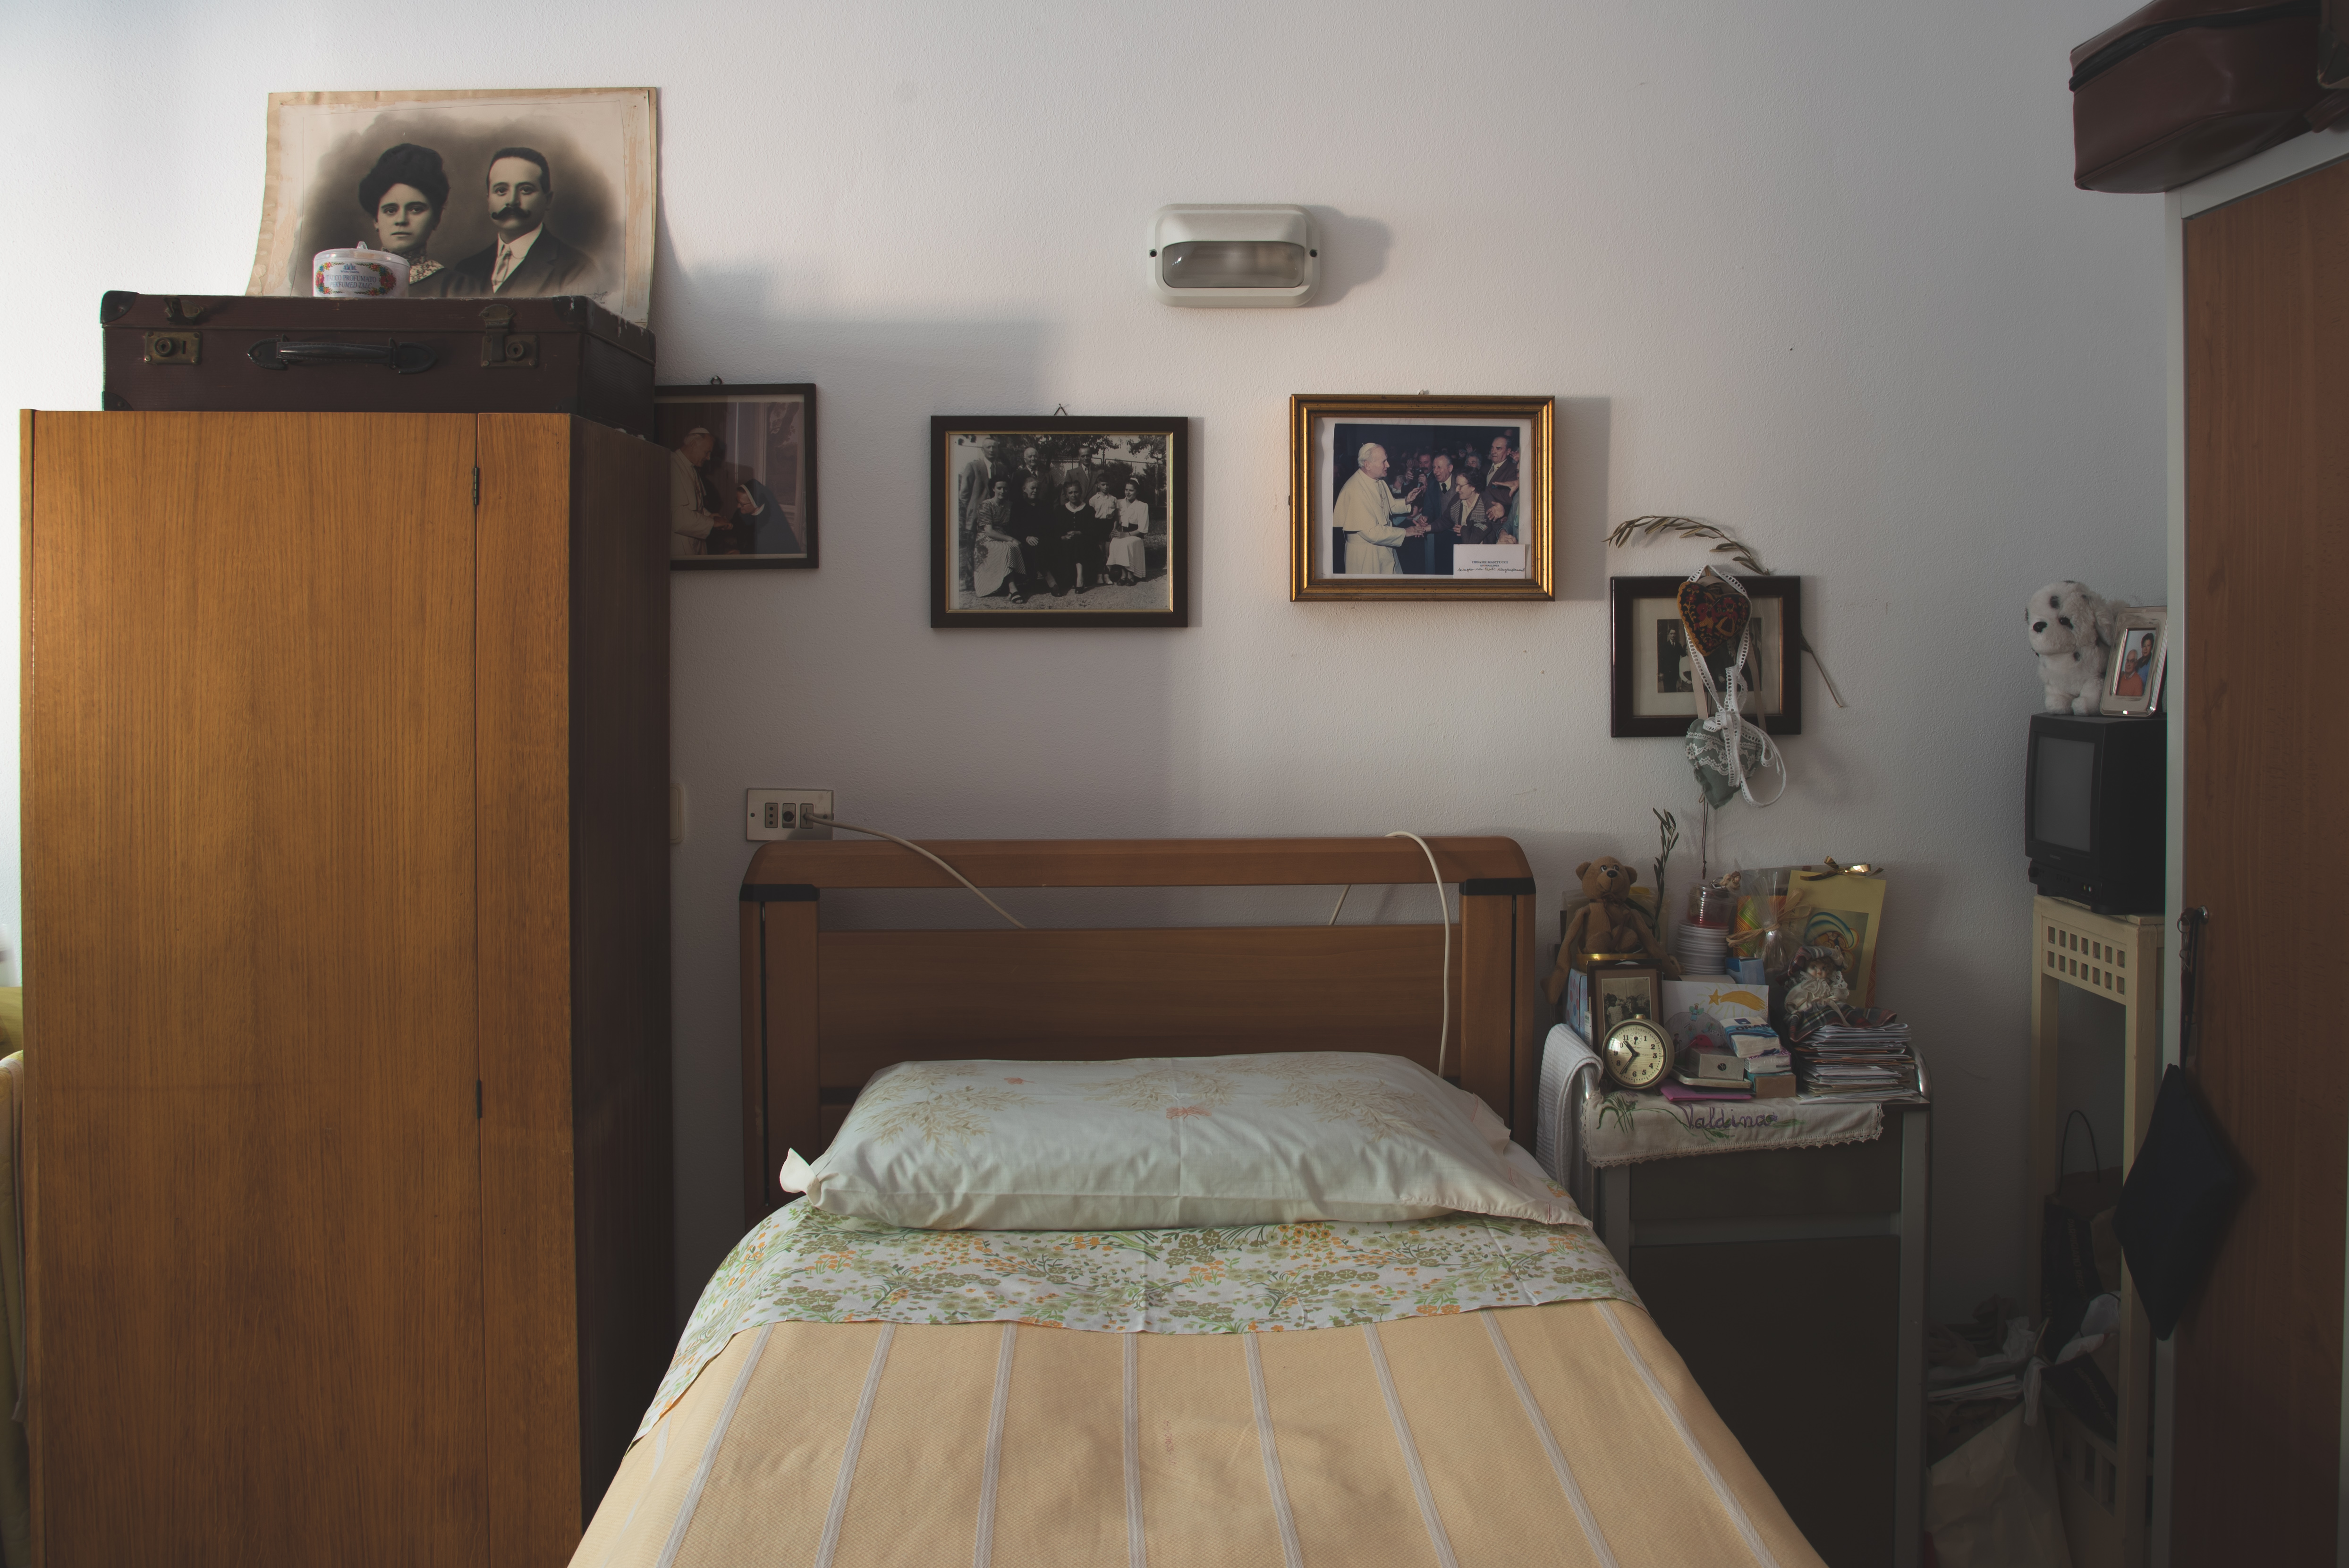 Valdina room in the elderly shelter